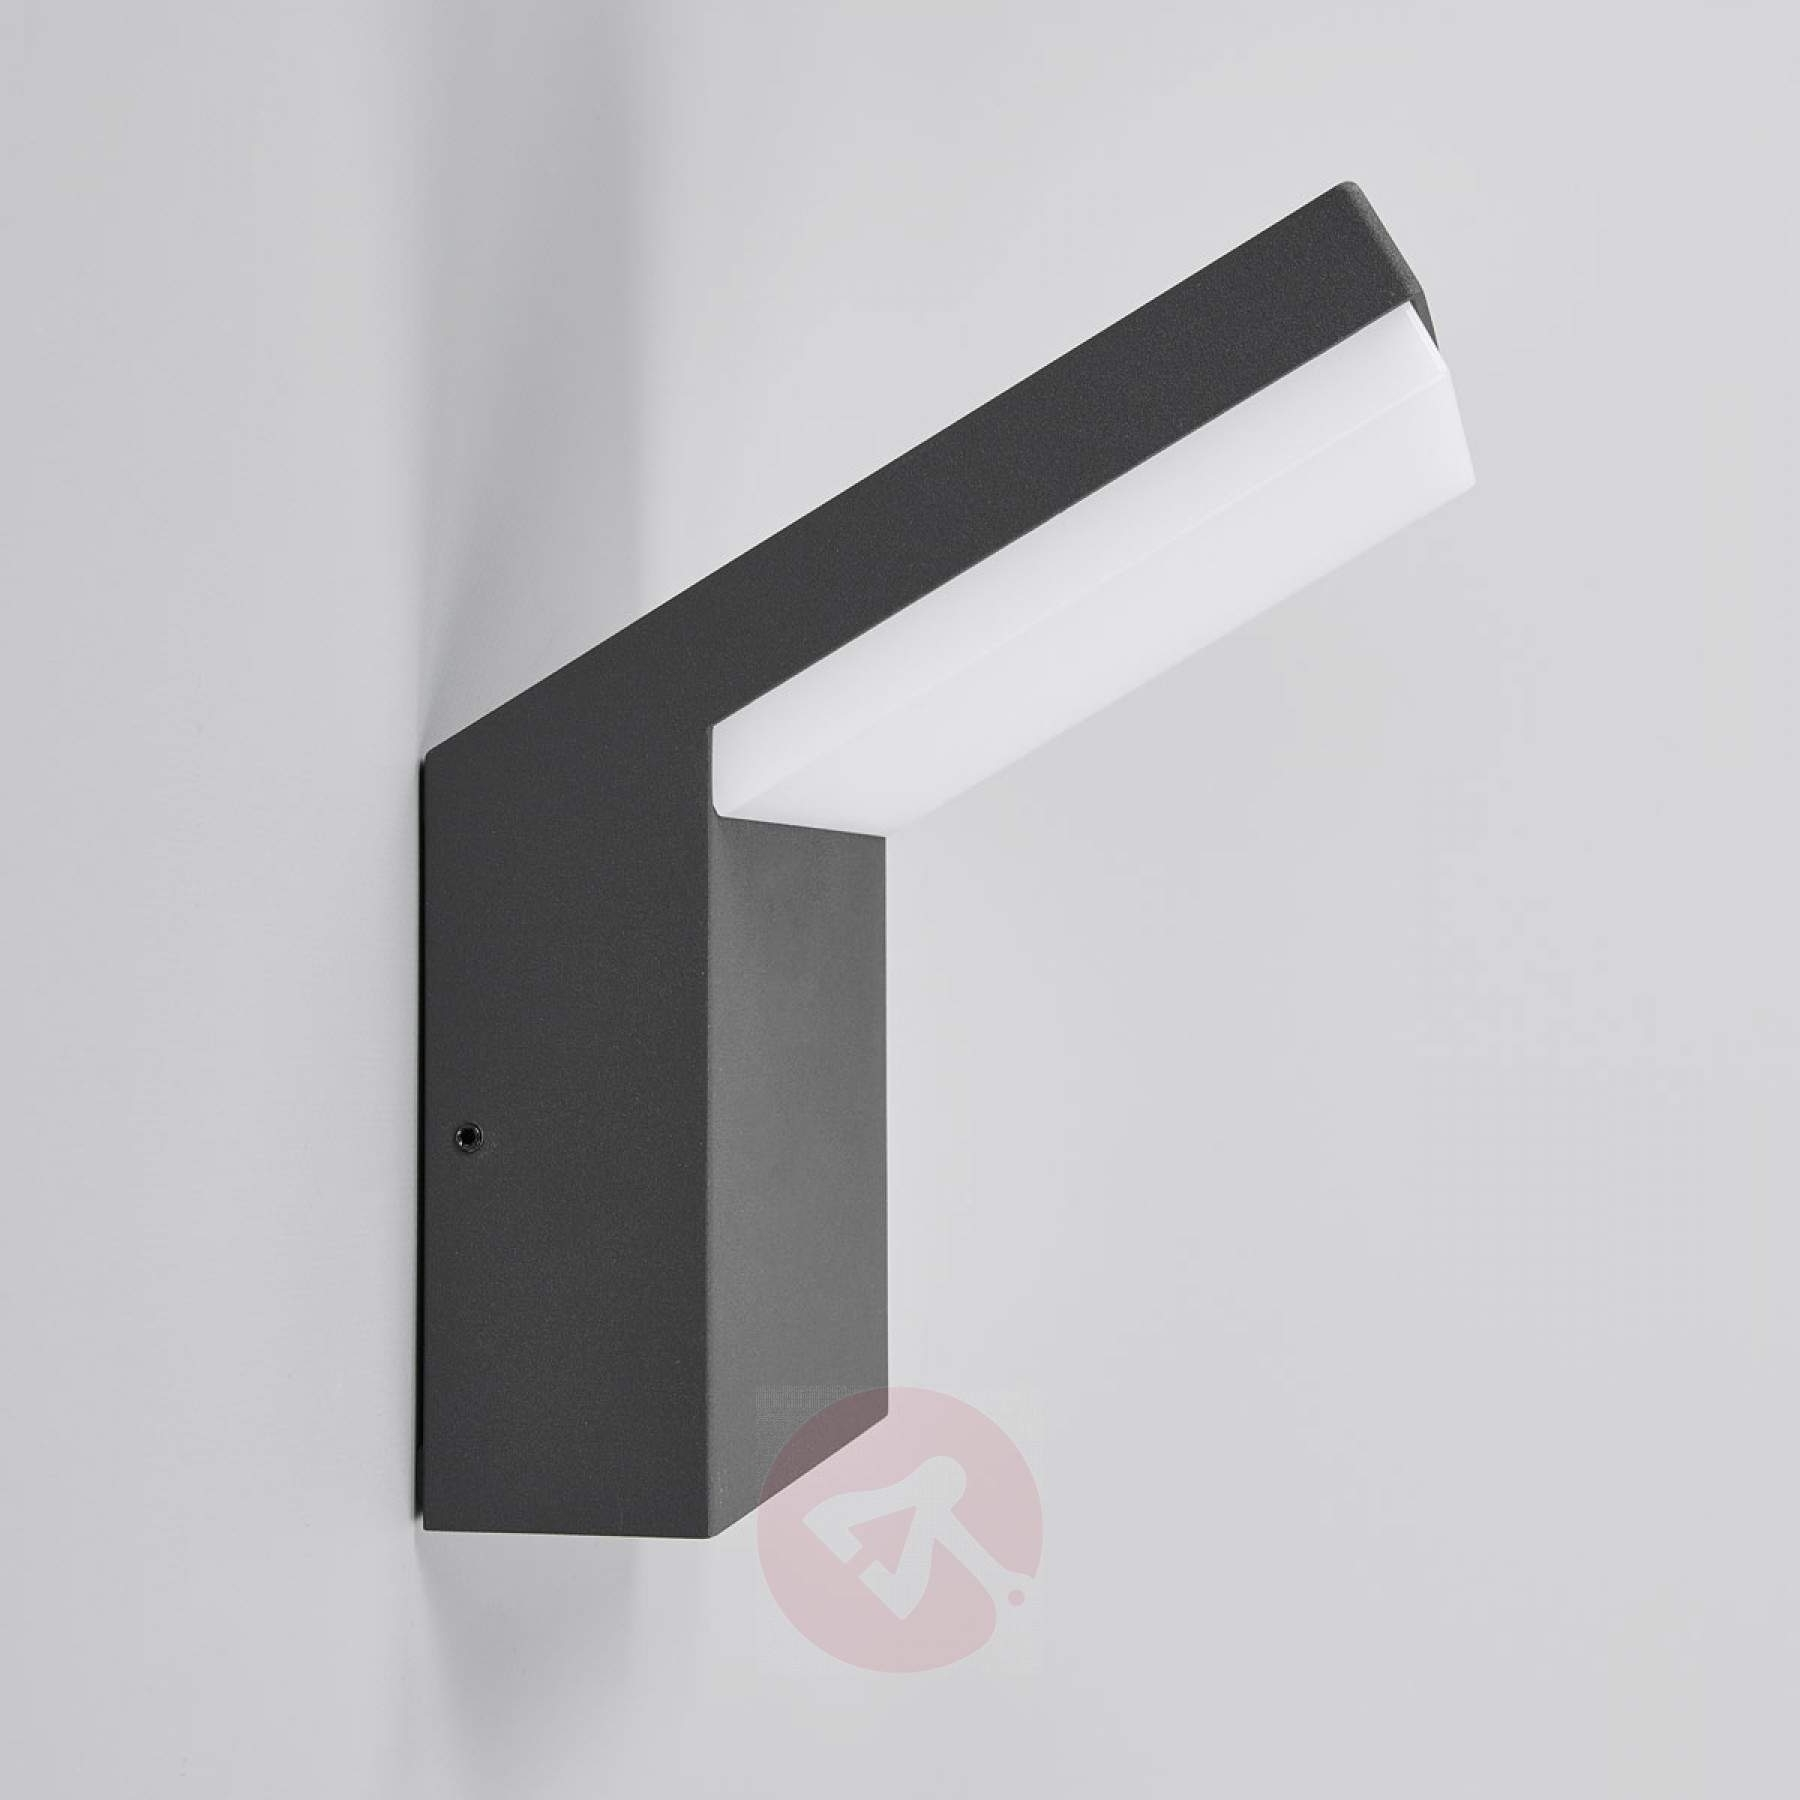 Famous Downlighting Led Outdoor Wall Lamp Yolena (View 11 of 20)